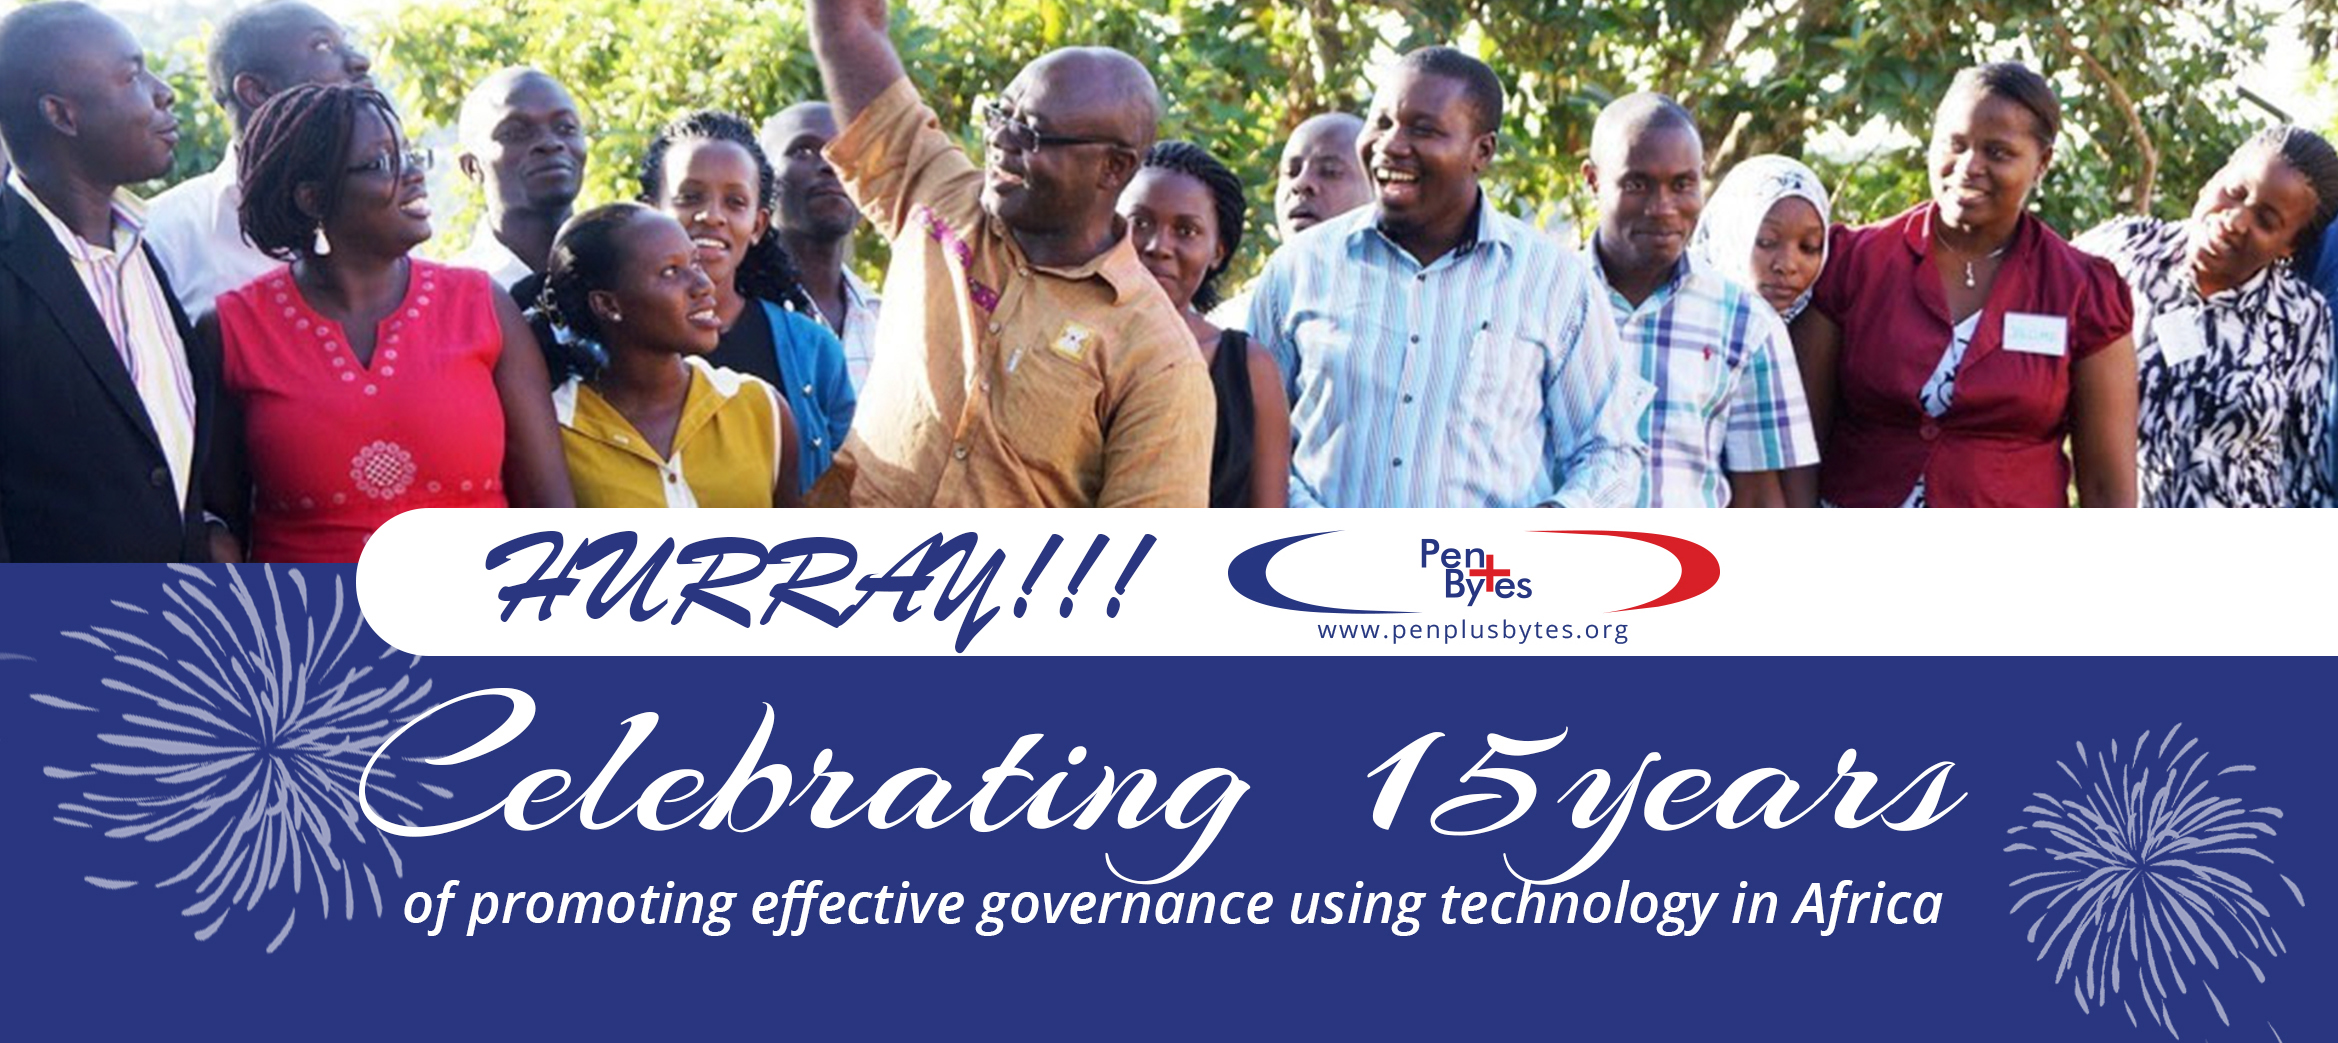 Penplusbytes to Mark 15th Anniversary with Press Soiree and Launch of Ghana Media Info Portal